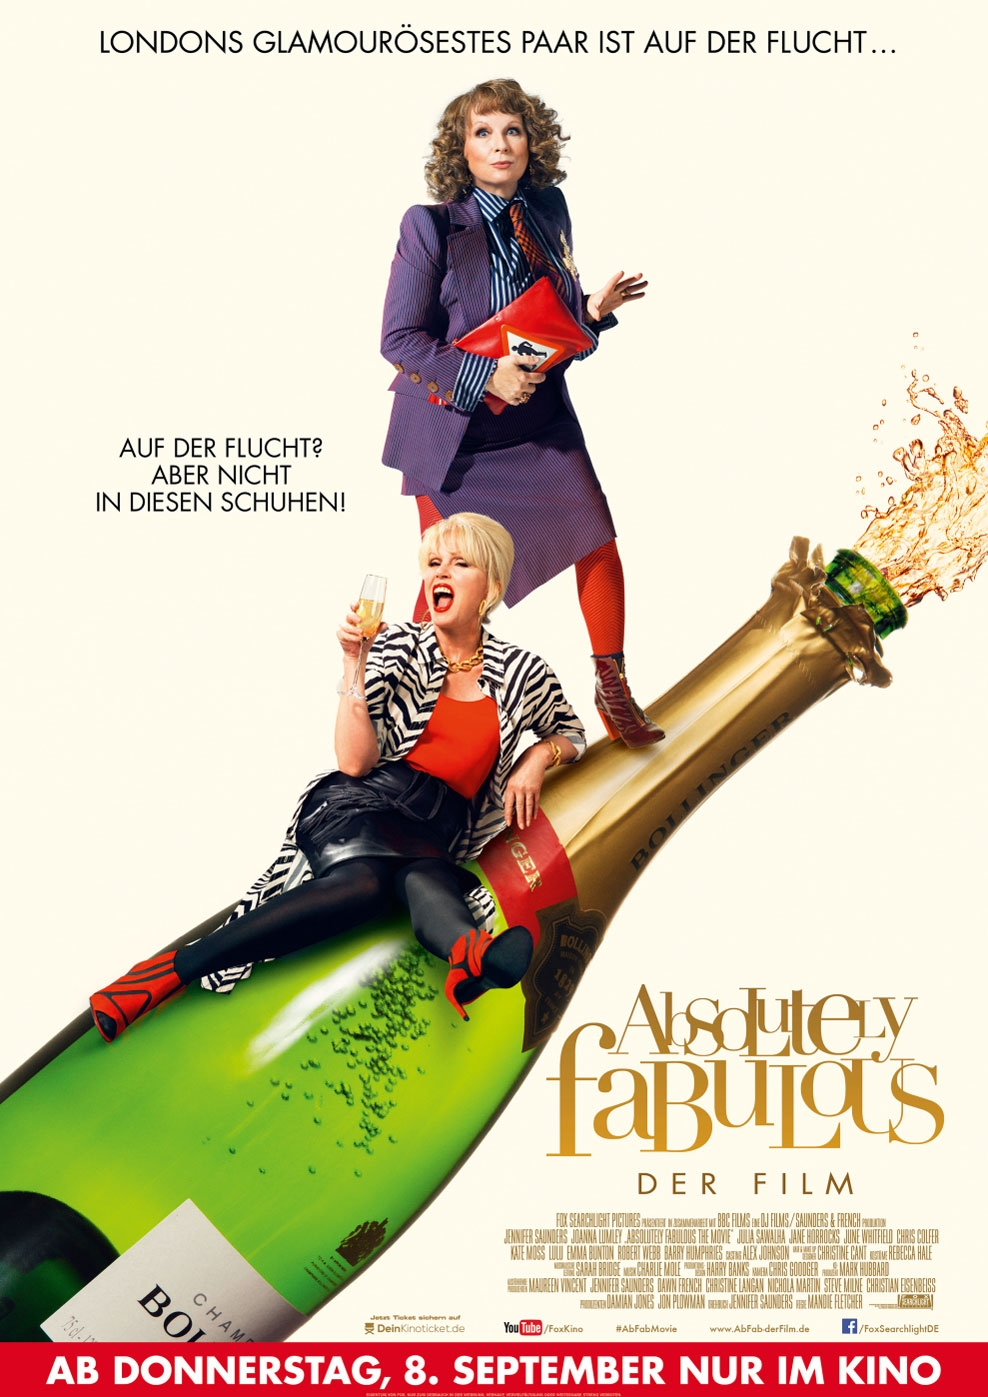 Absolutely Fabulous - Der Film (Poster)